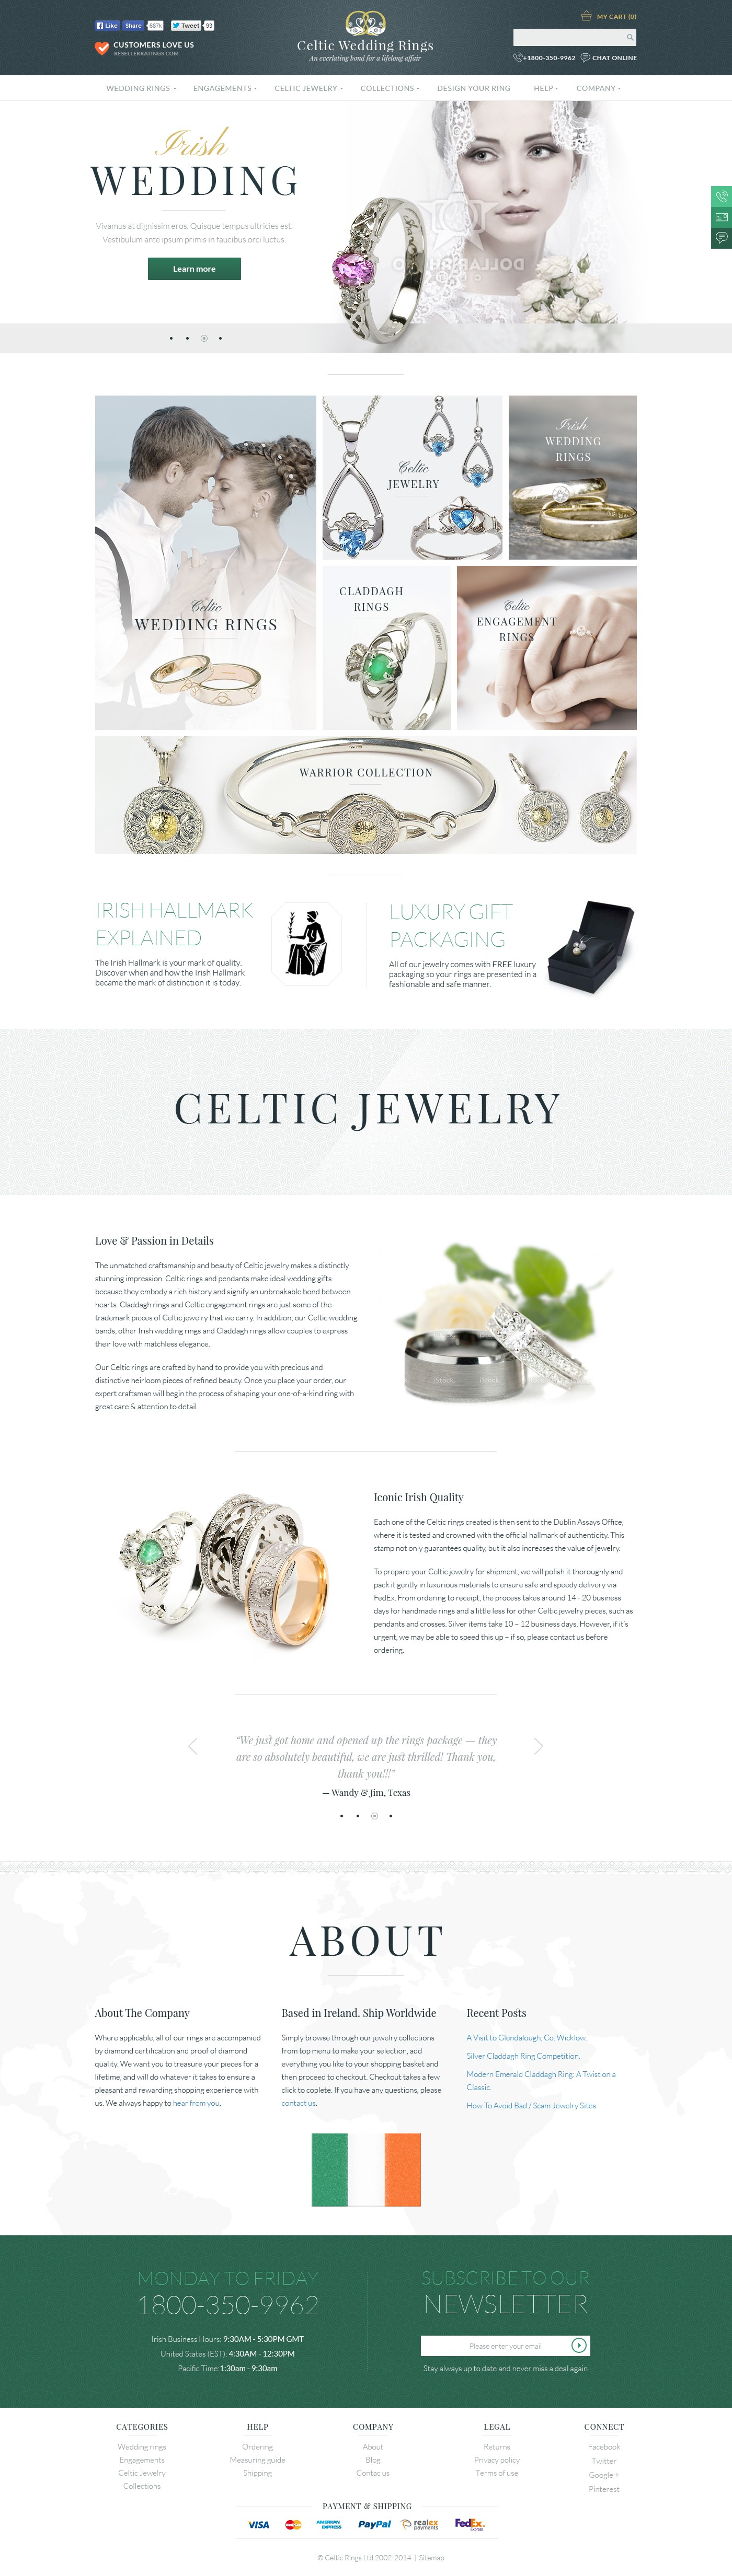 Redesign of Ireland's largest online Jewelry store.